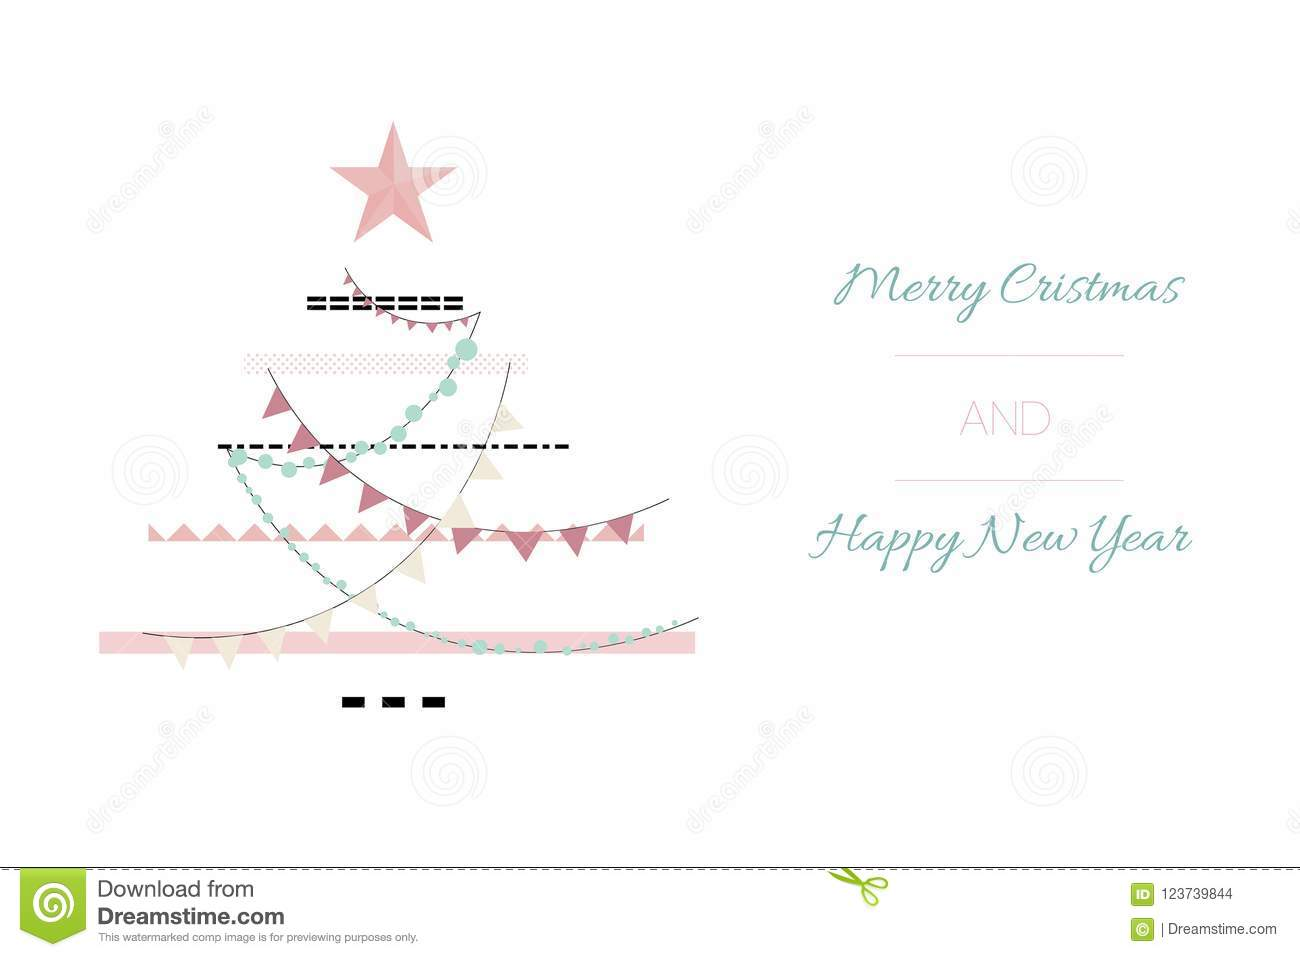 Hand drawn vector abstract Merry Christmas and Happy New Year time vintage cartoon illustrations greeting card template.